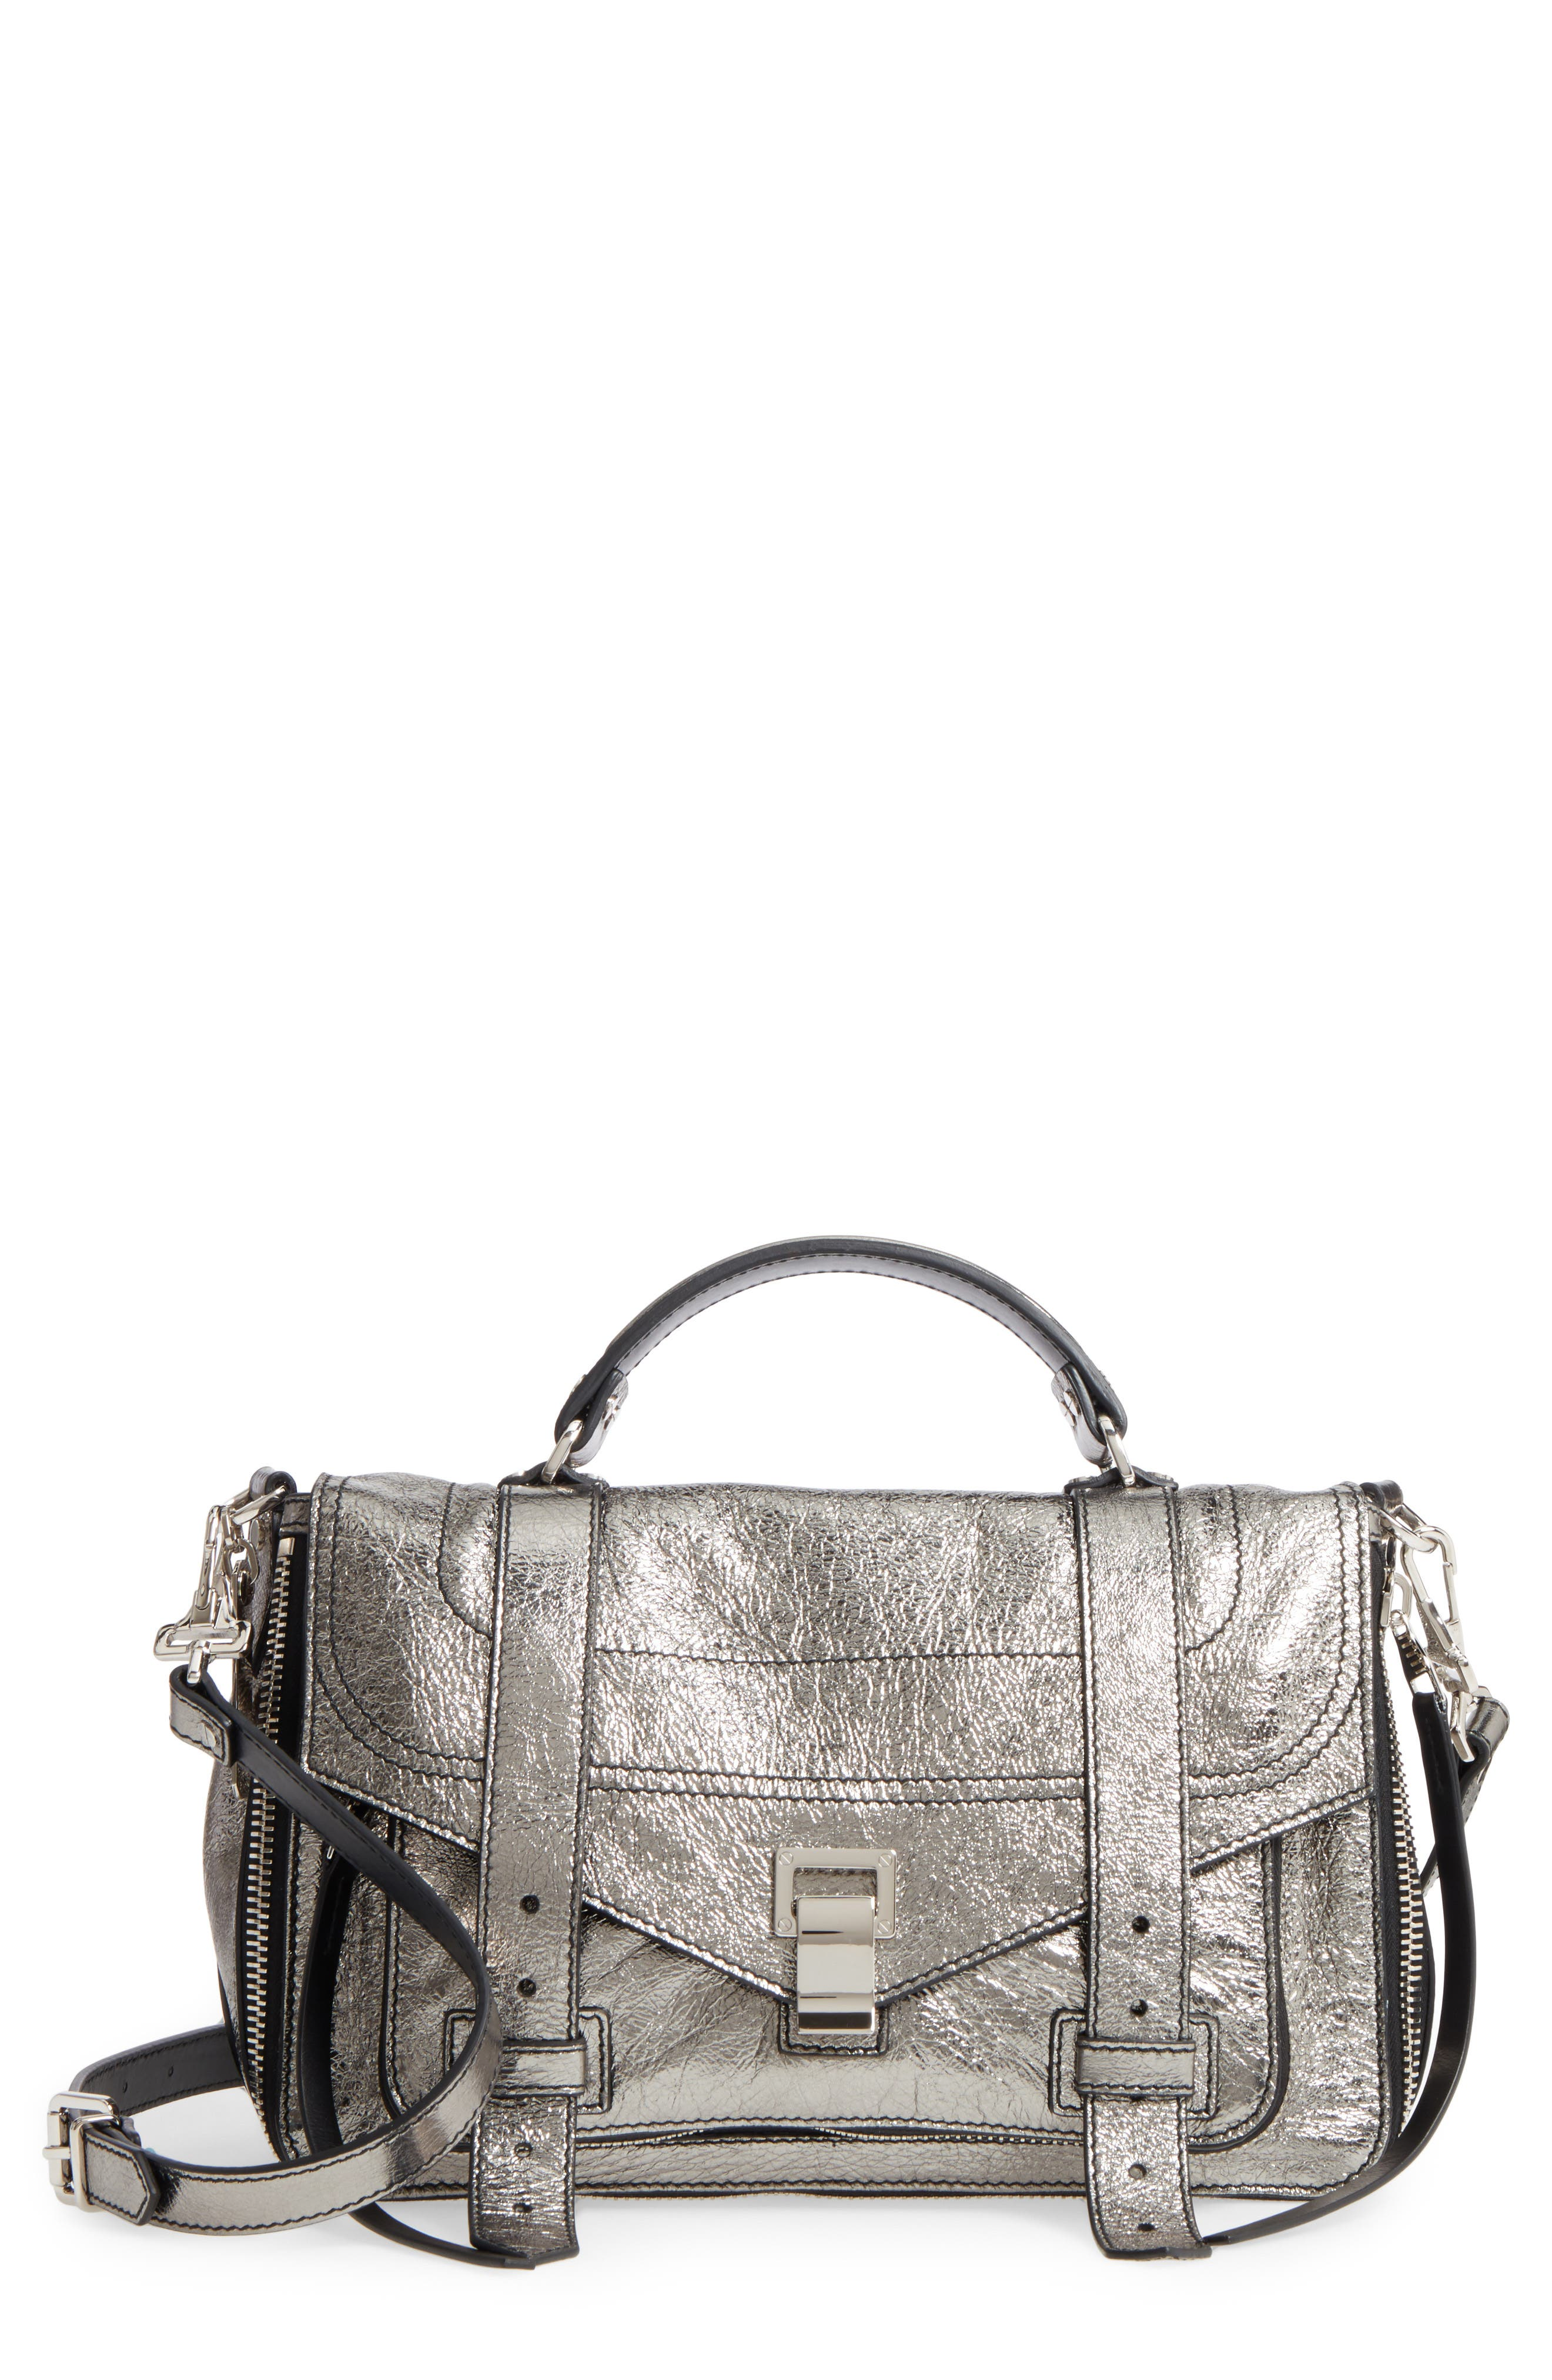 Medium PS1 Metallic Calfskin Satchel,                             Main thumbnail 1, color,